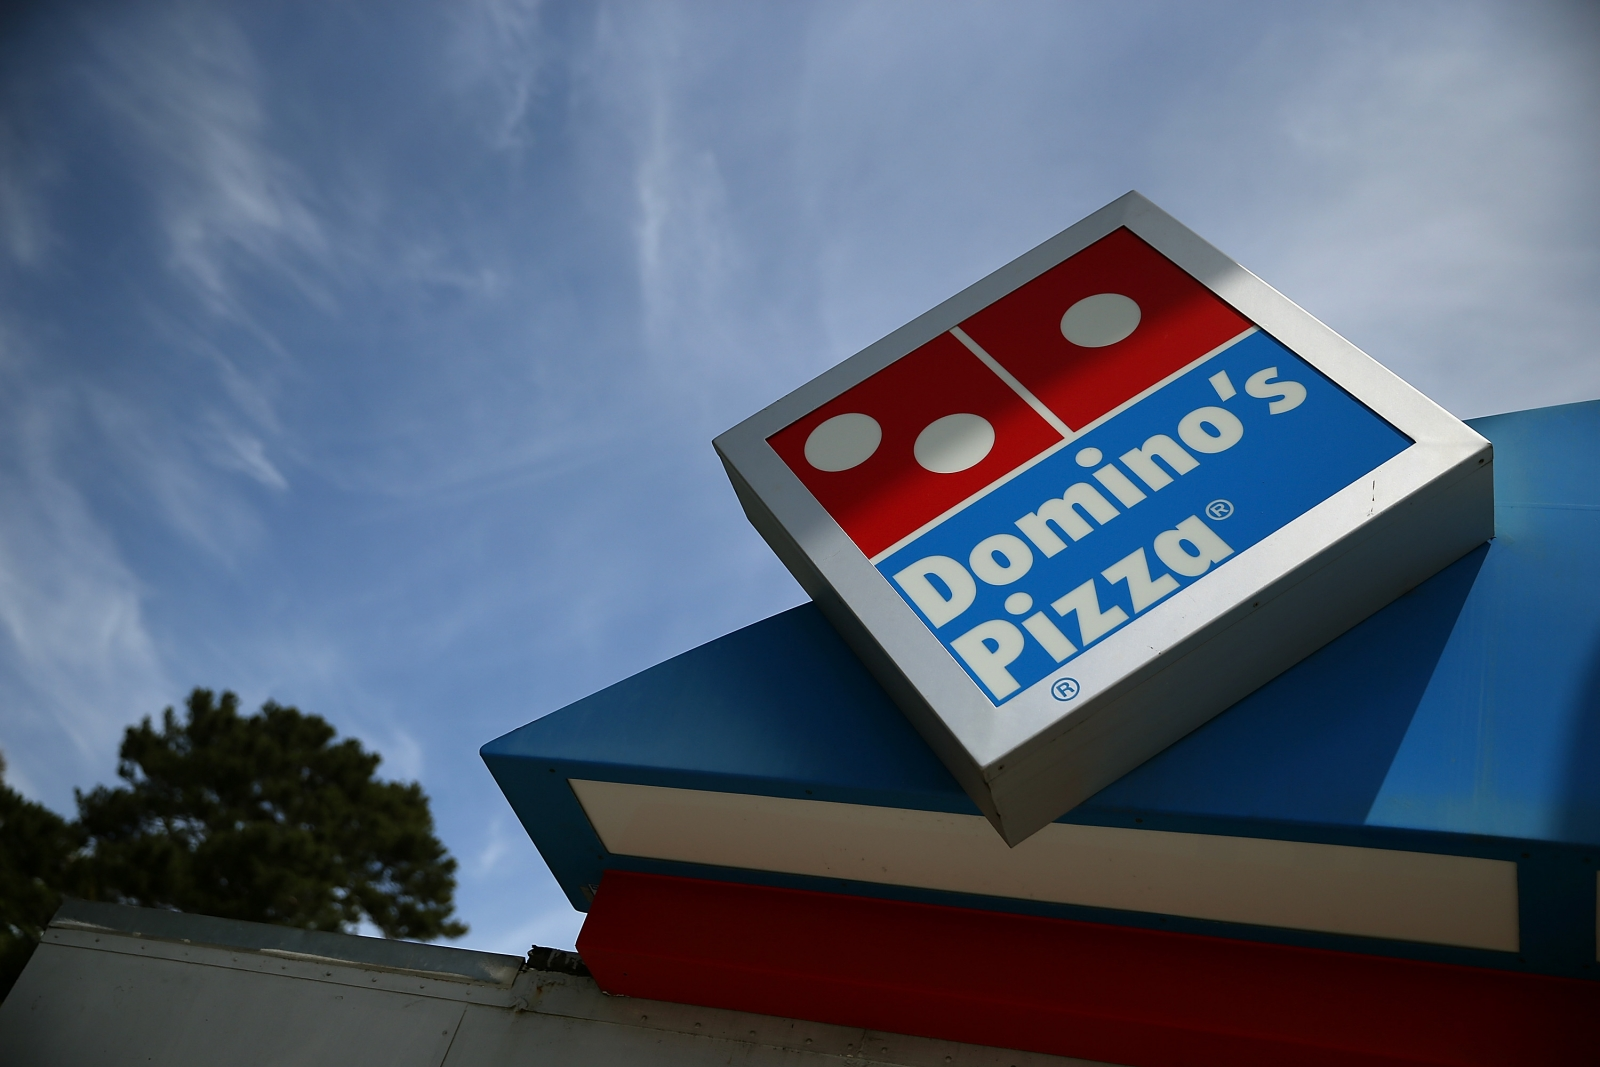 Domino 39 s pizza 39 s profit surges after euro 2016 boost - Dominos pizza paterna ...